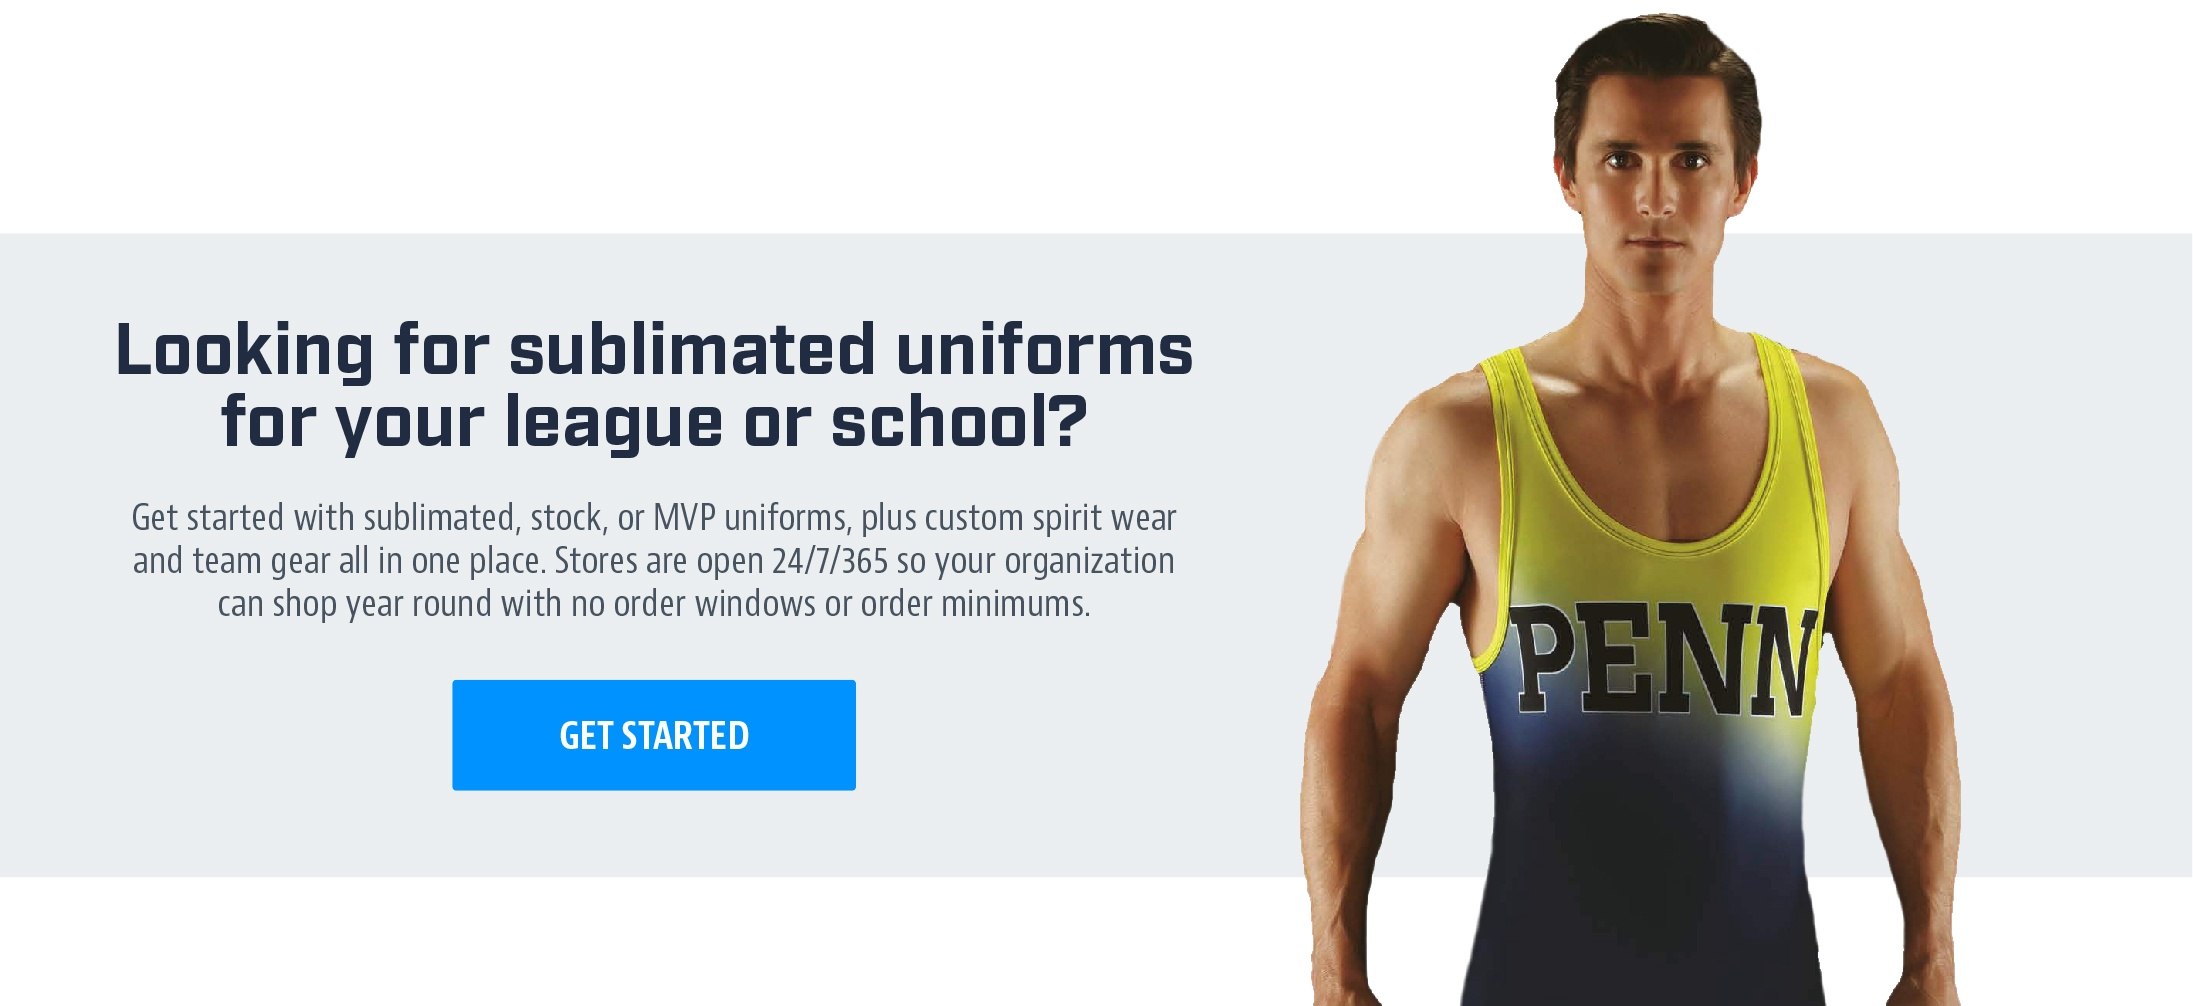 Looking for sublimated uniforms for your league or school?